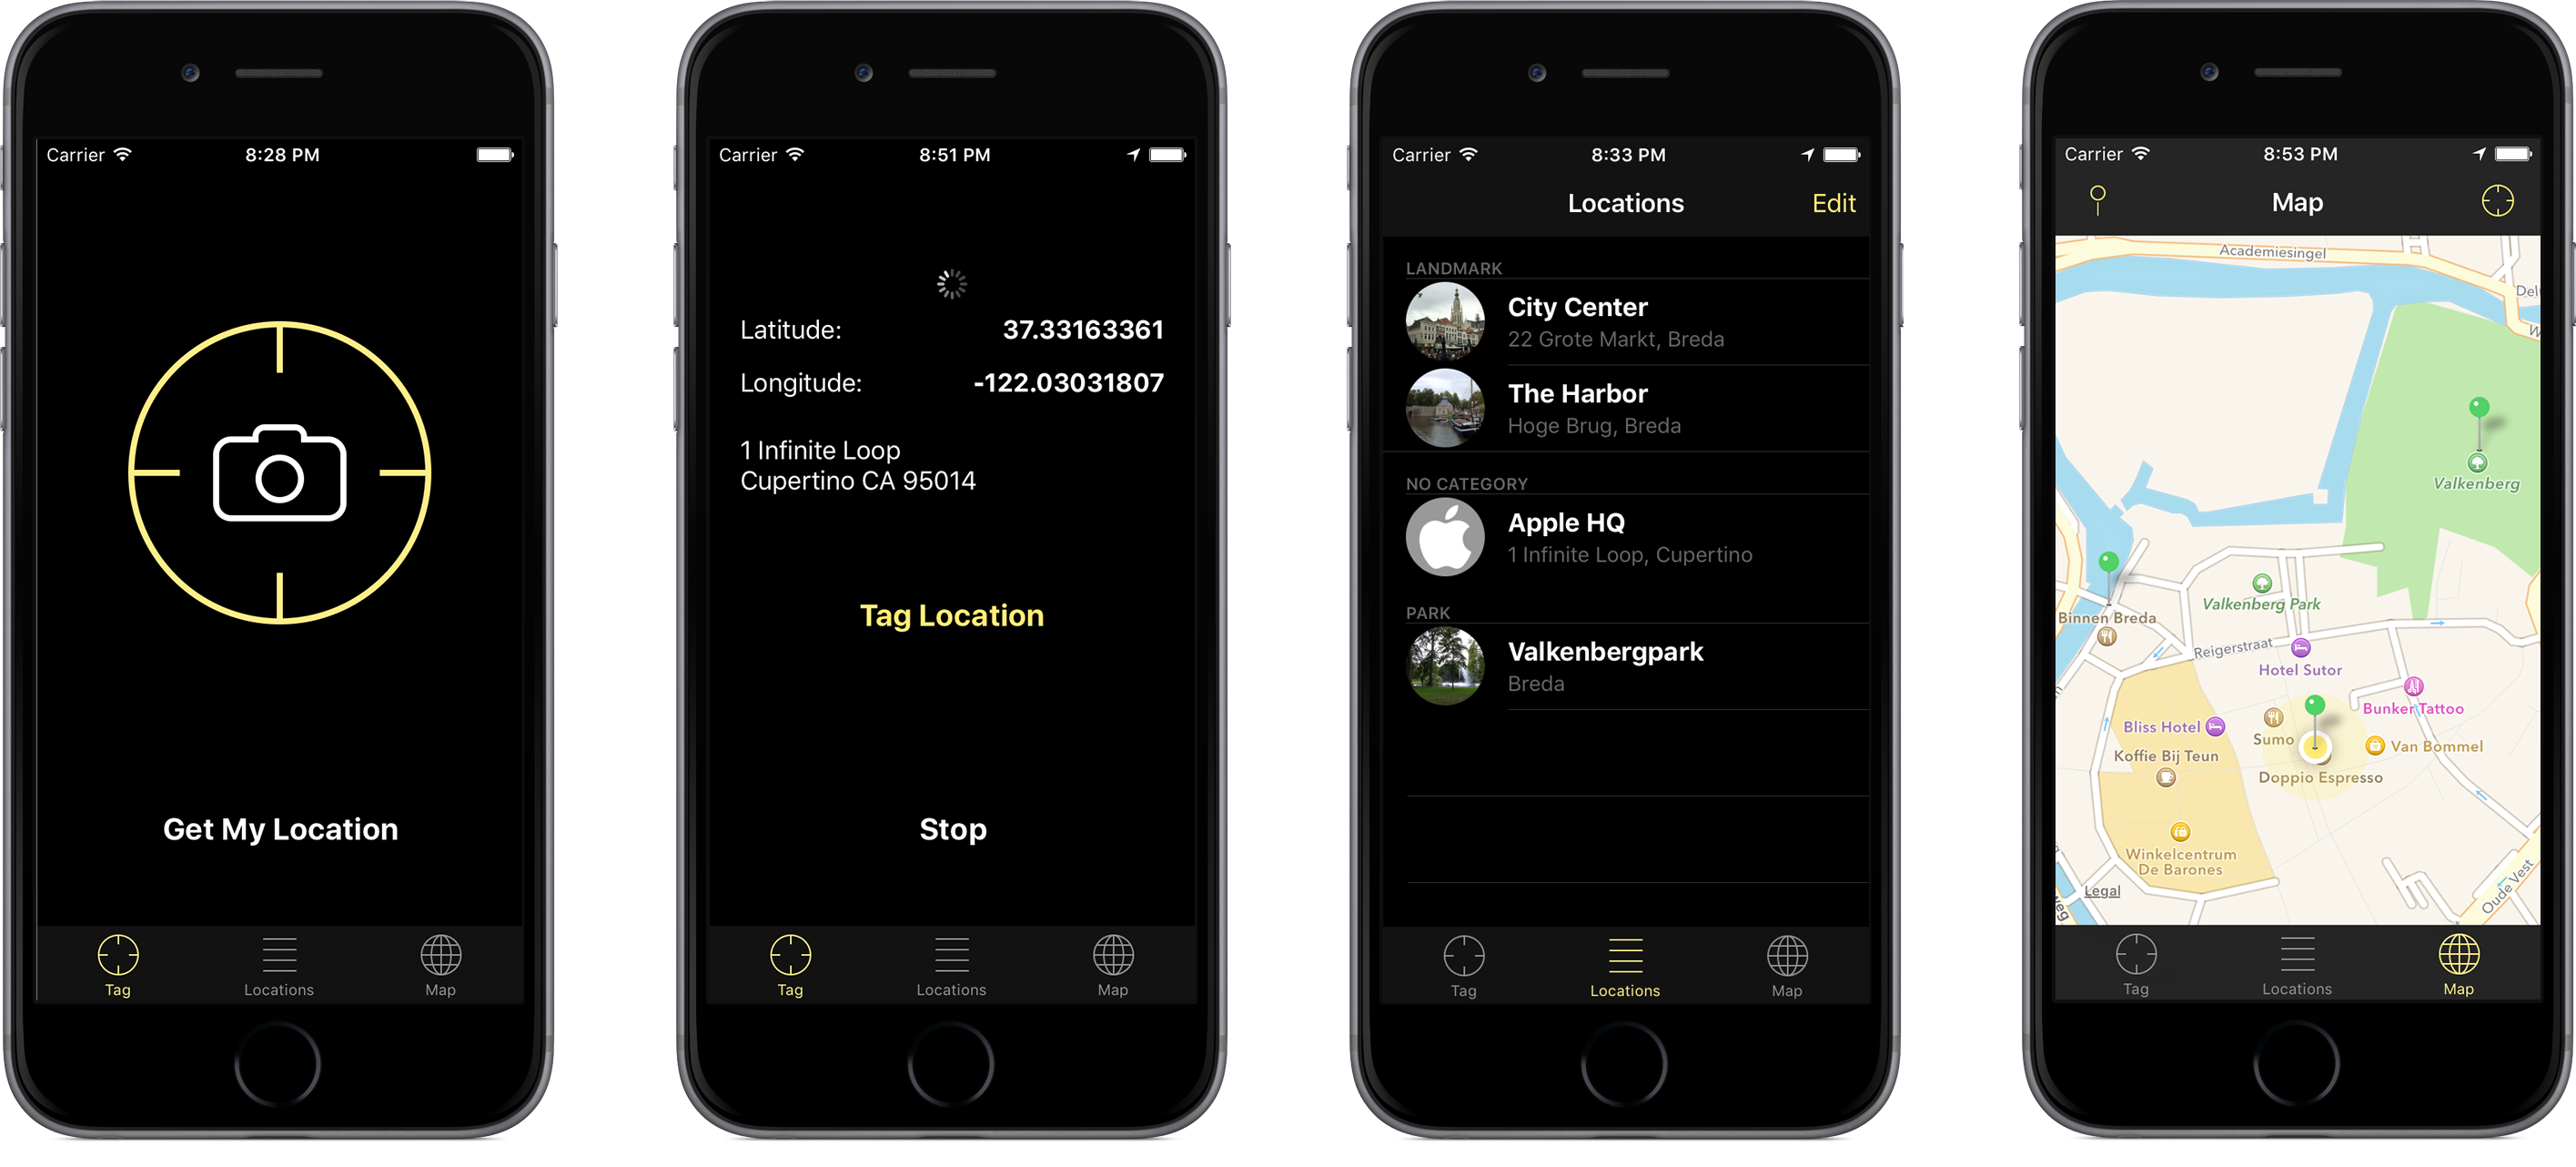 The MyLocations app